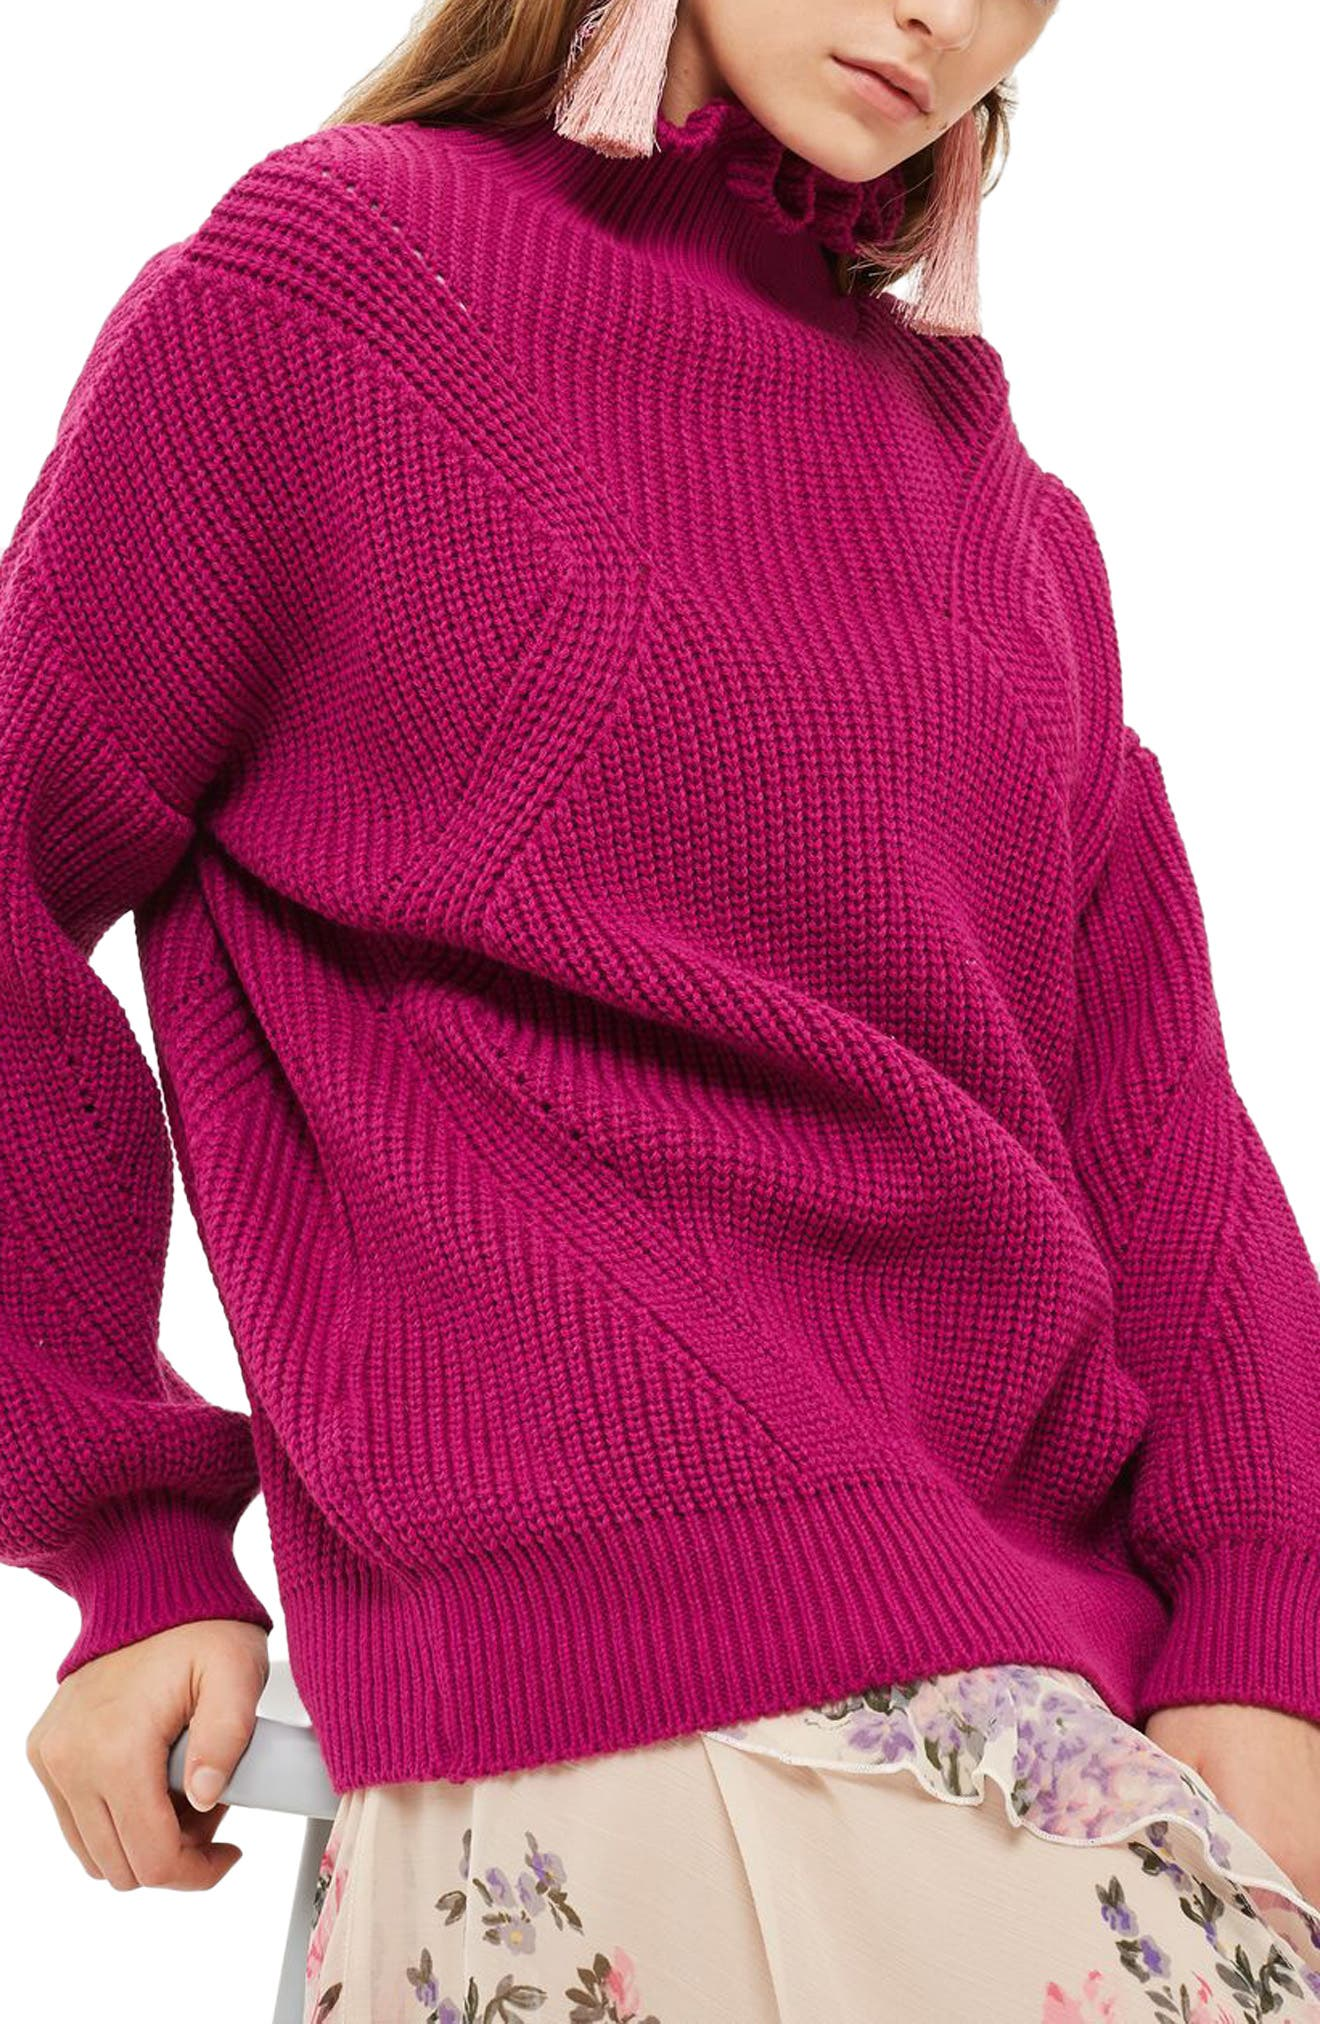 Topshop Frill Neck Sweater